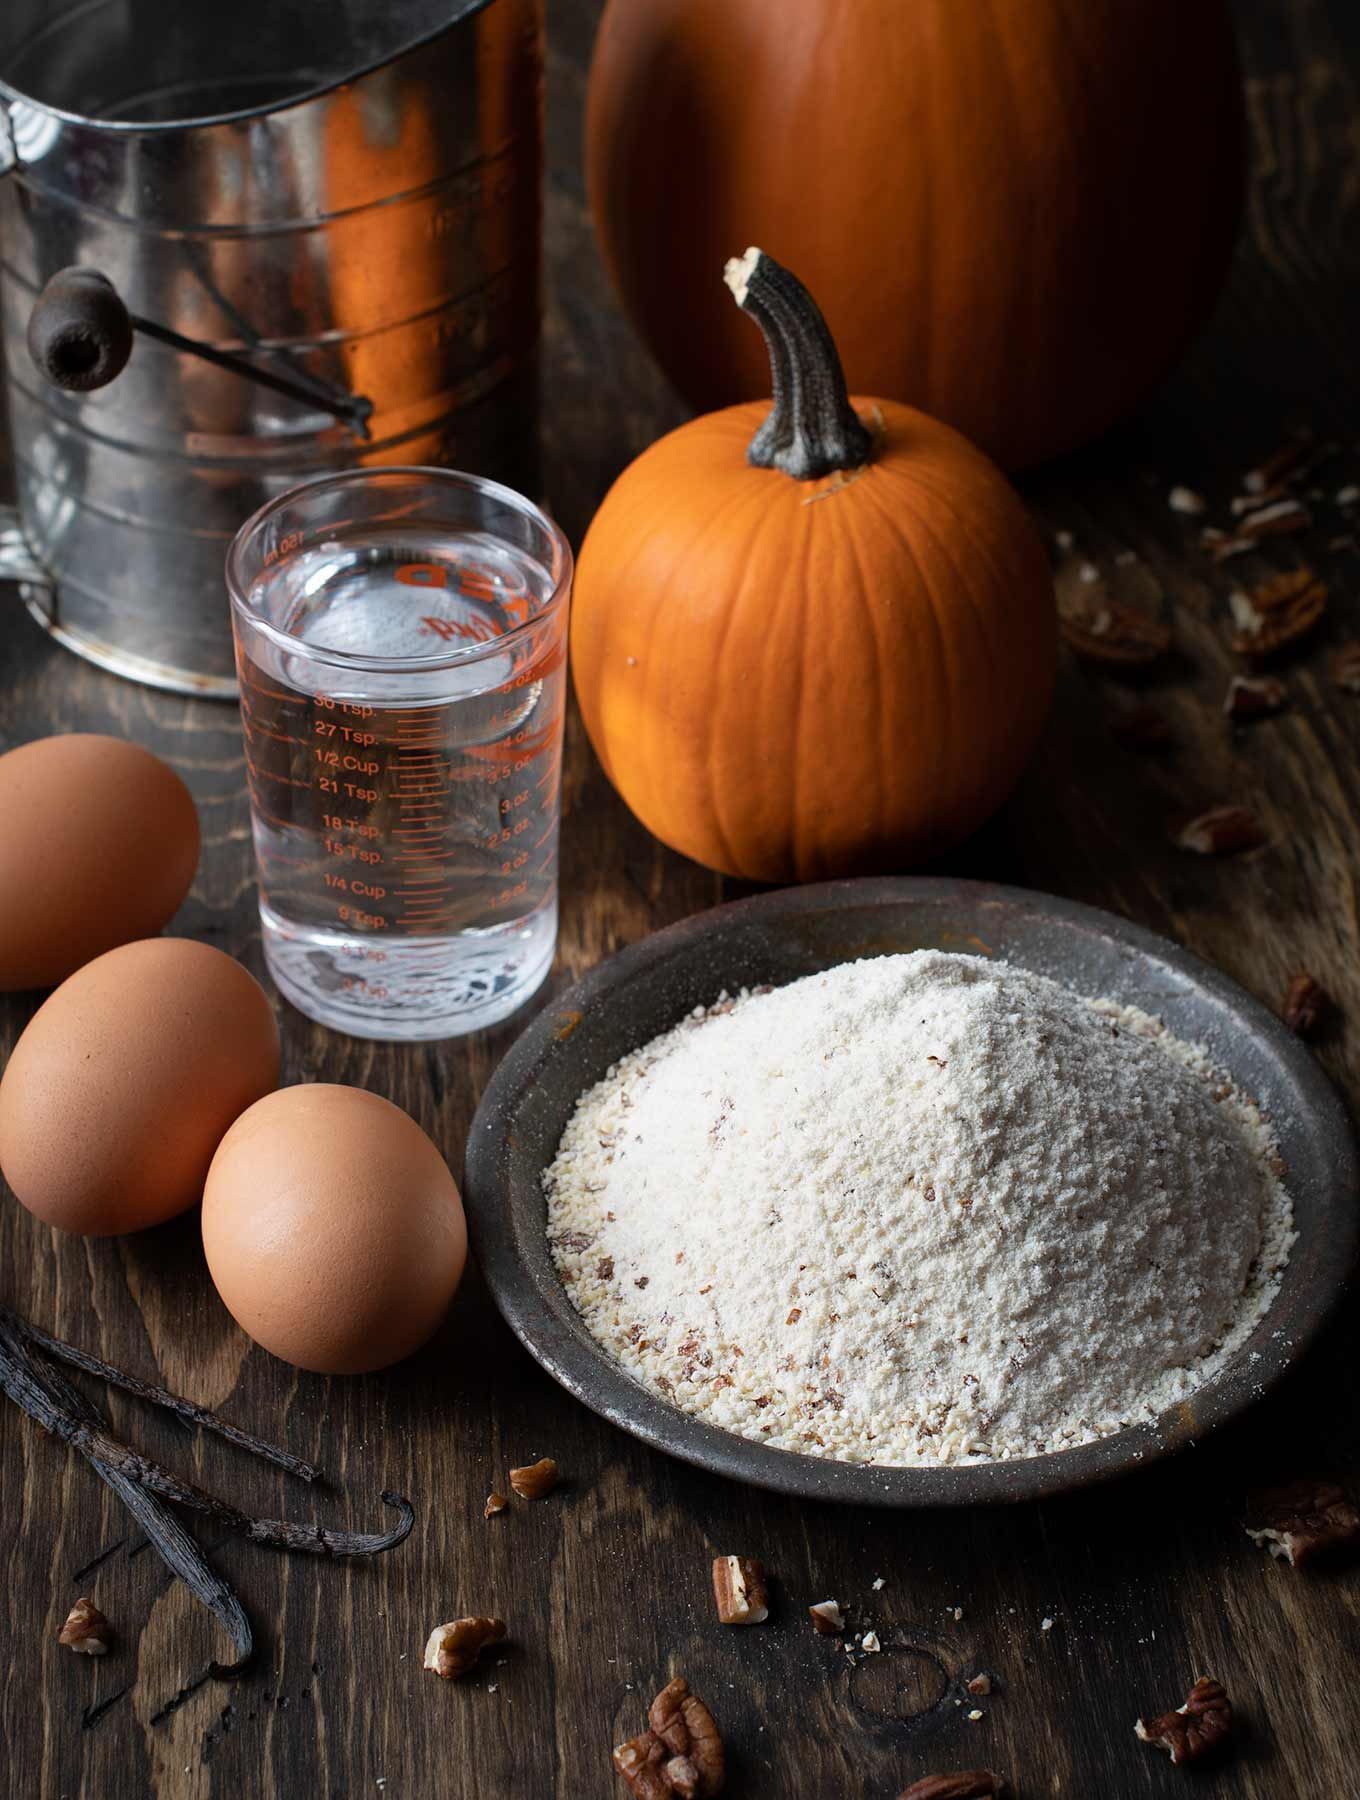 Ingredients for pumpkin spiced pancakes